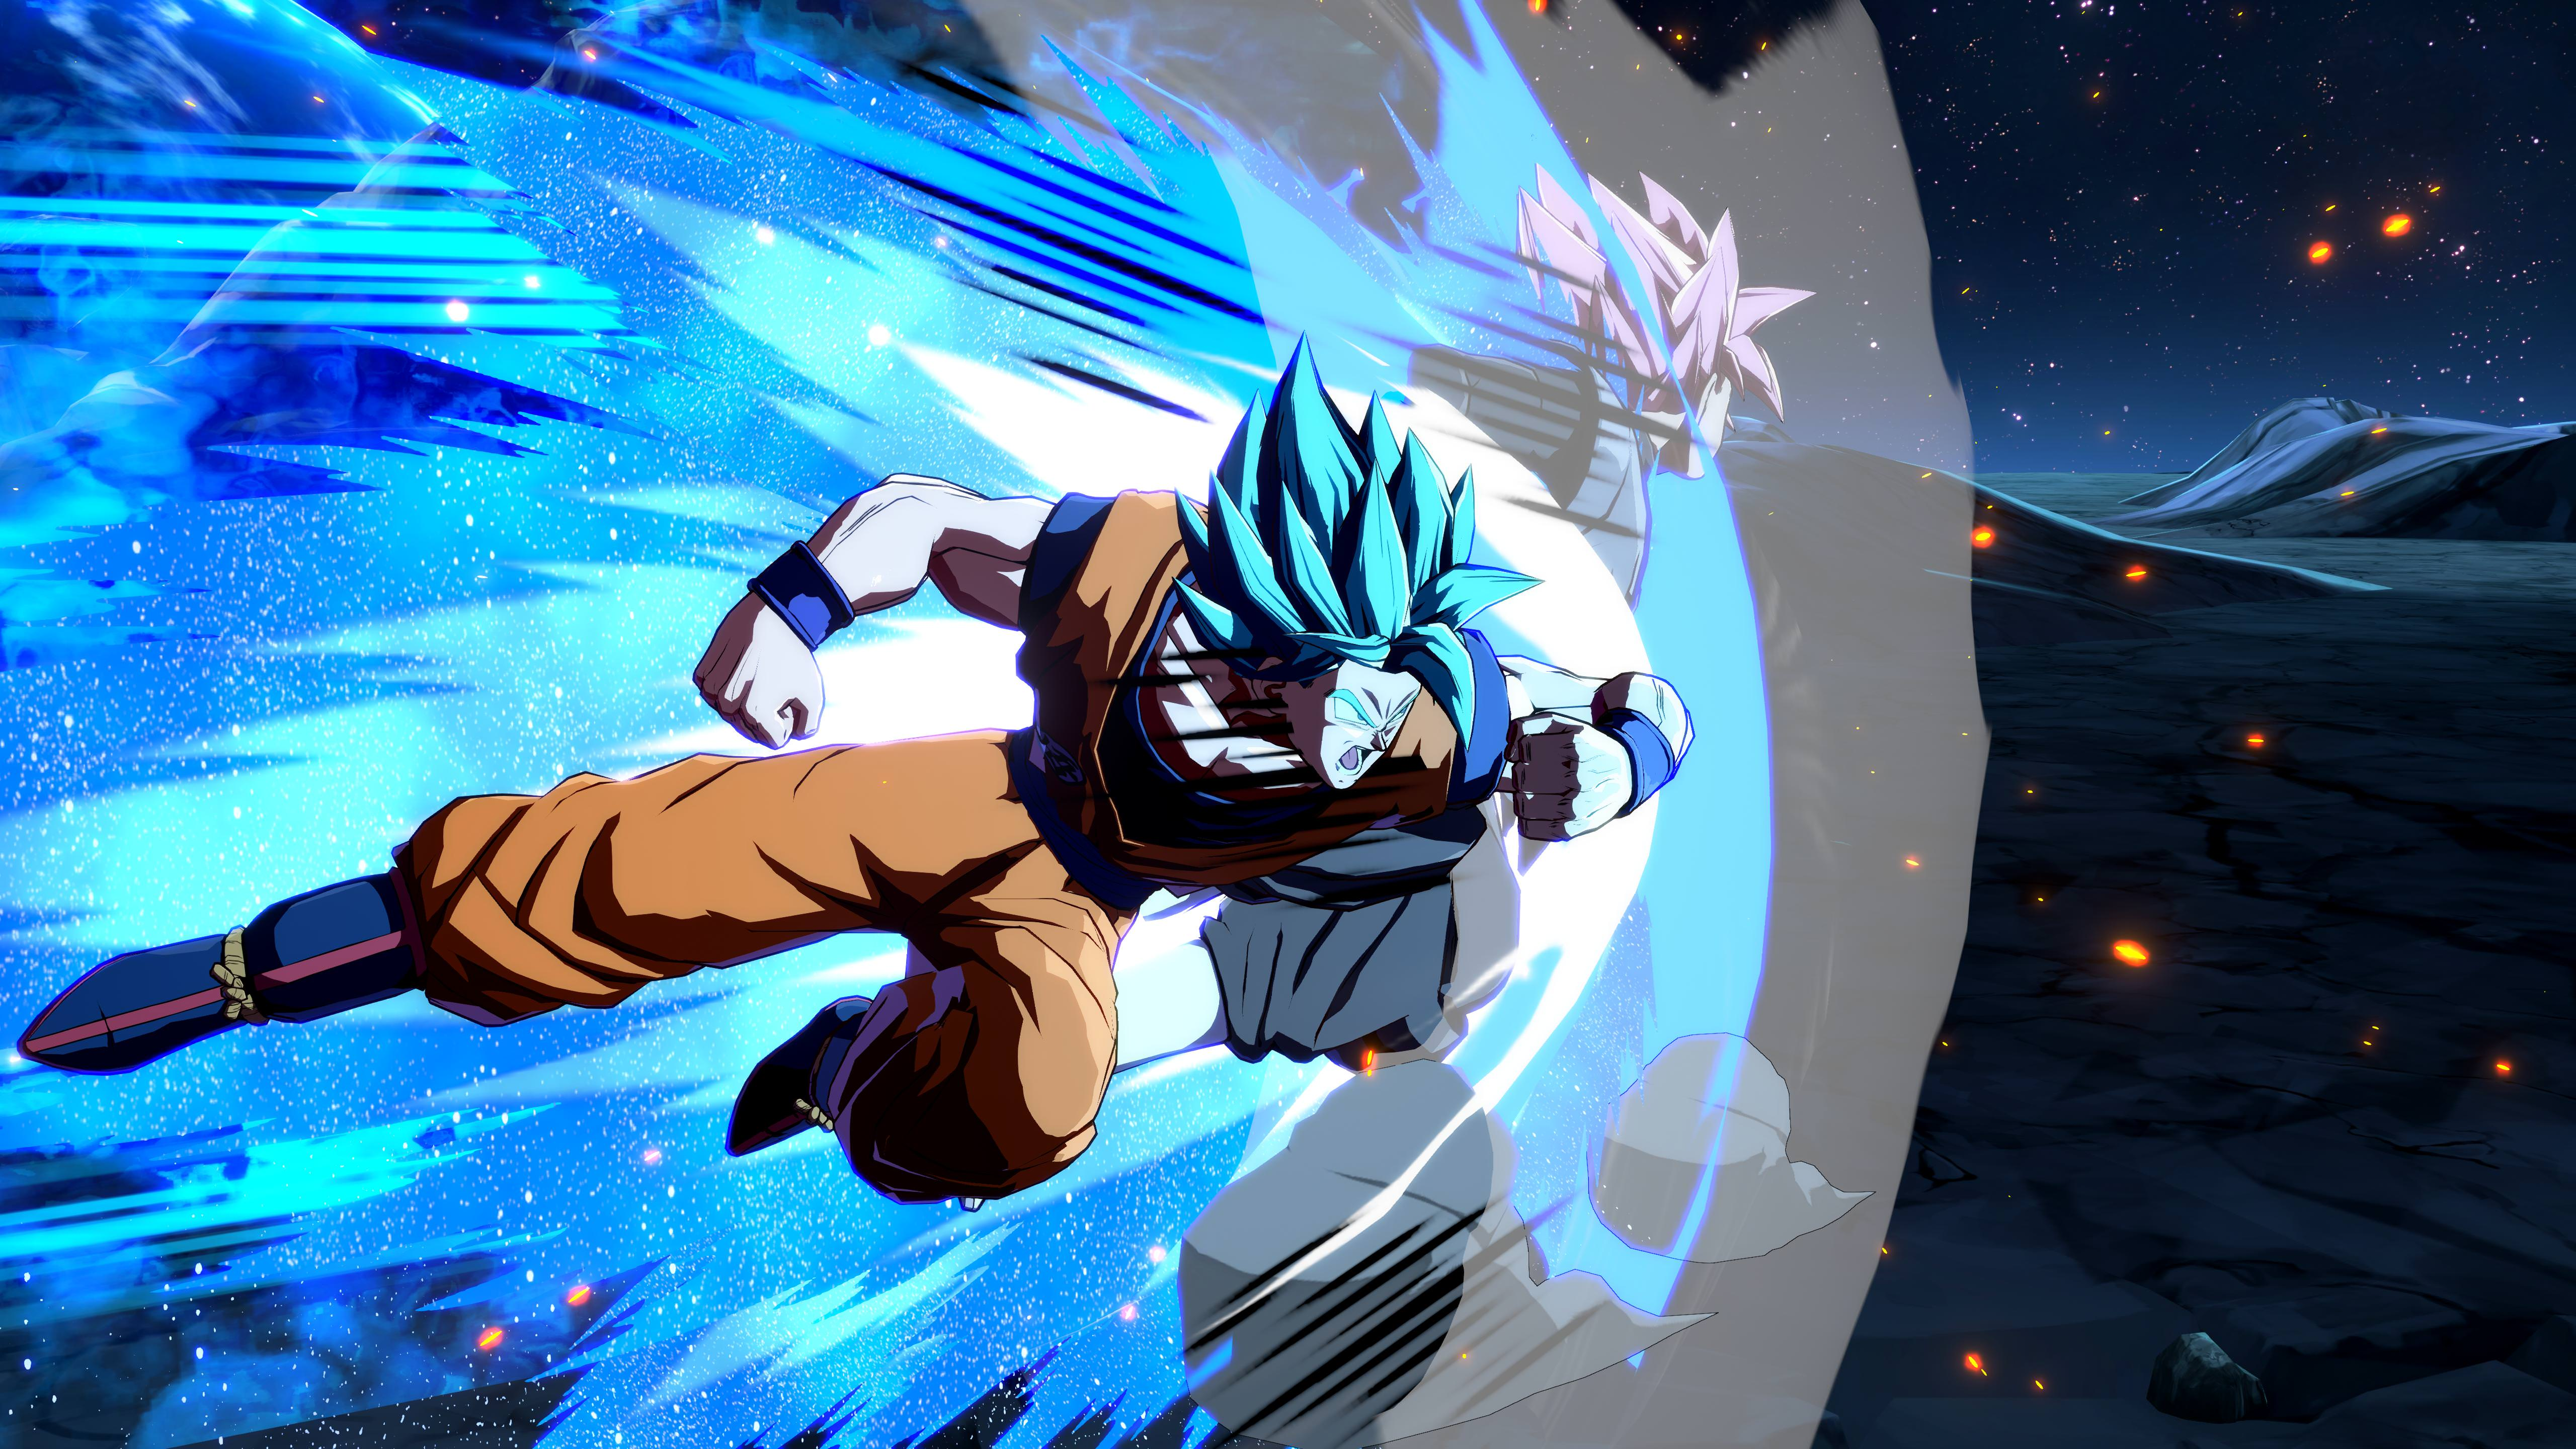 Dragon Ball Z 3d Wallpaper Download Dragon Ball Fighterz Hd Games 4k Wallpapers Images